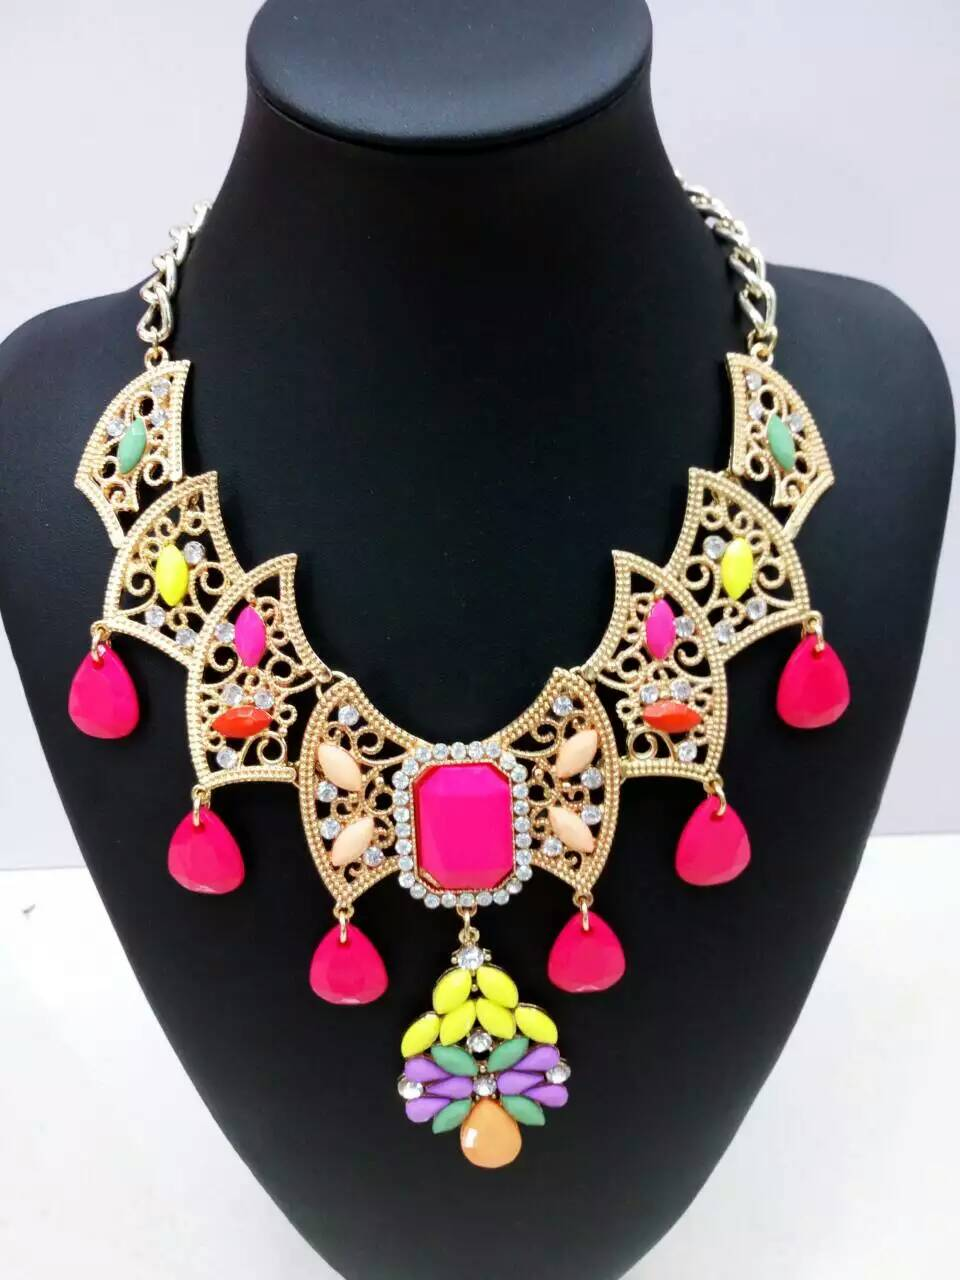 Hot Sale Pink Gem Necklace Colar Big Brand Collares Bib Choker Chunky Woman Necklace Tassel Statement Necklace Jewelry(China (Mainland))